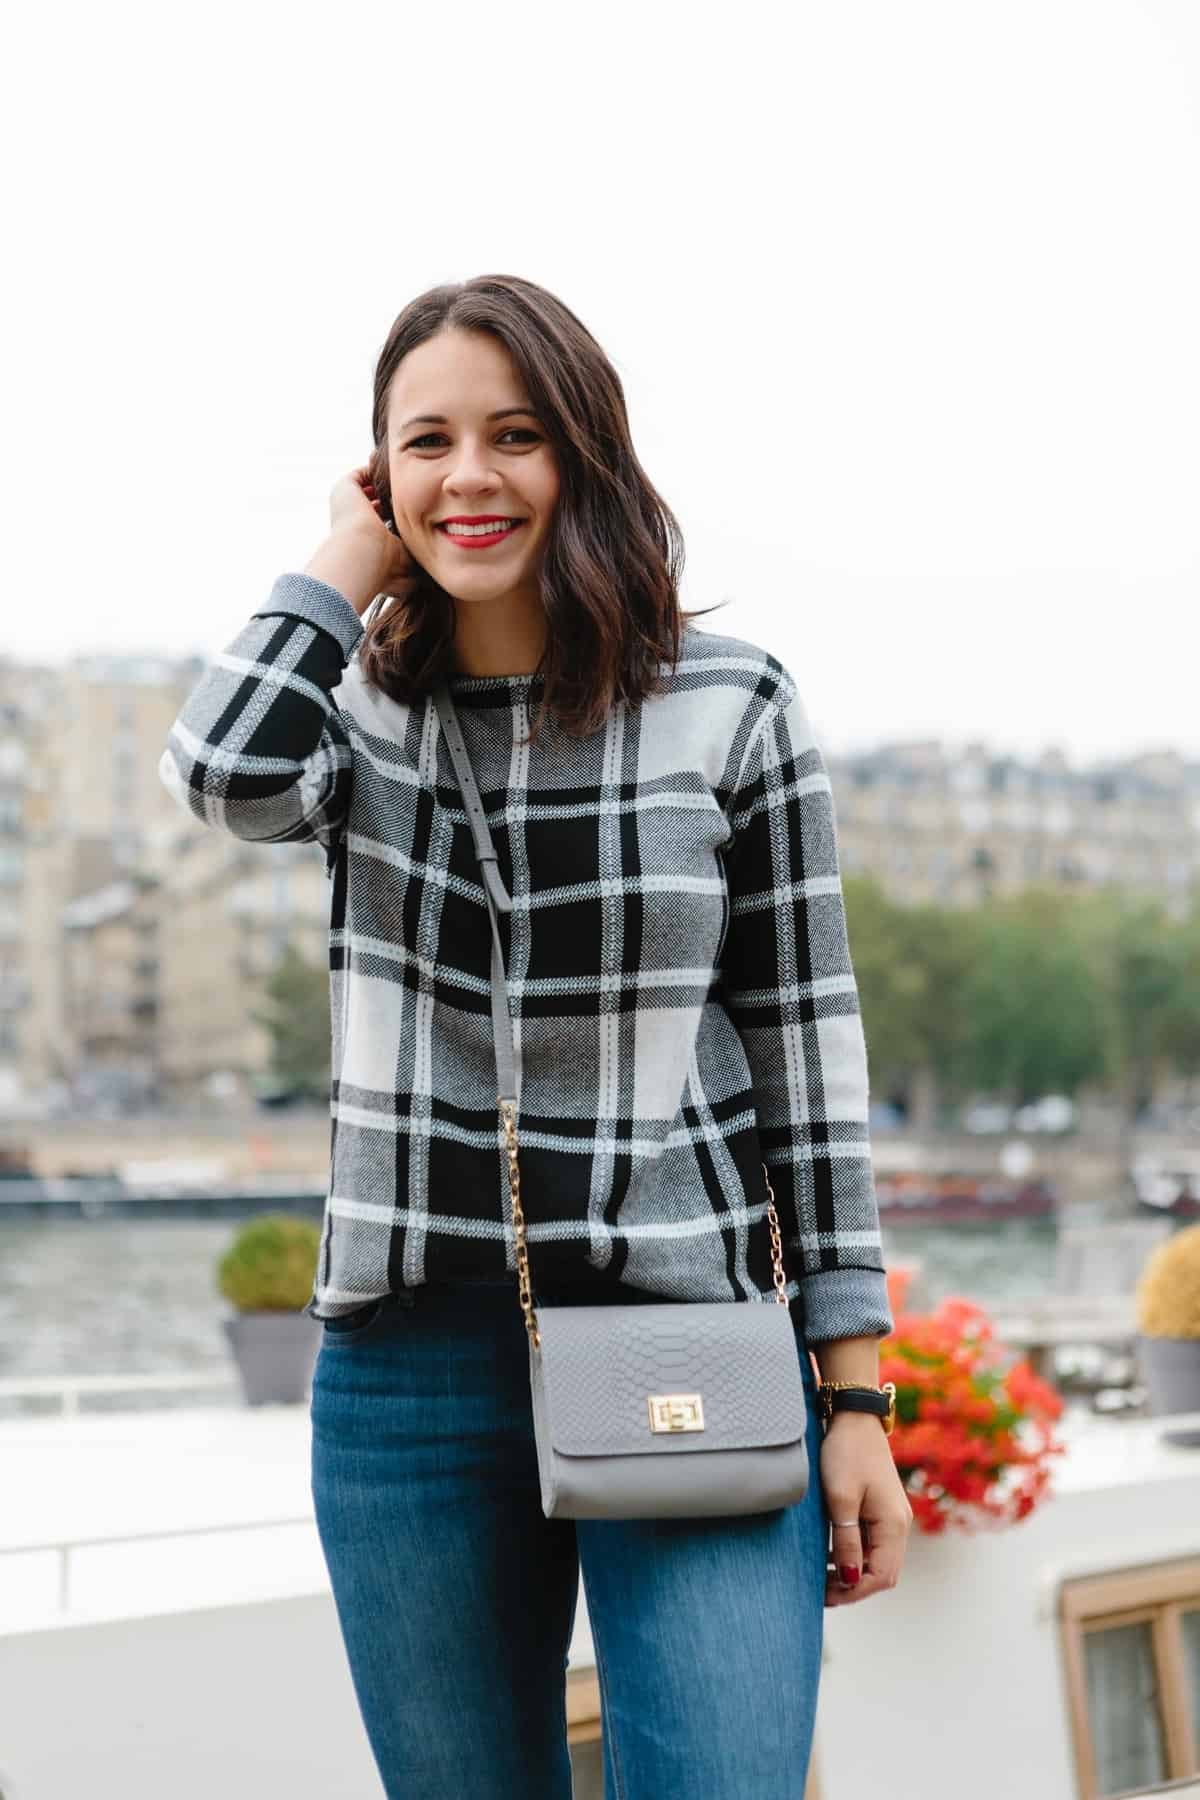 J. Jill plaid sweater, fall outfit ideas, Paris outfit ideas - My Style Vita @mystylevita